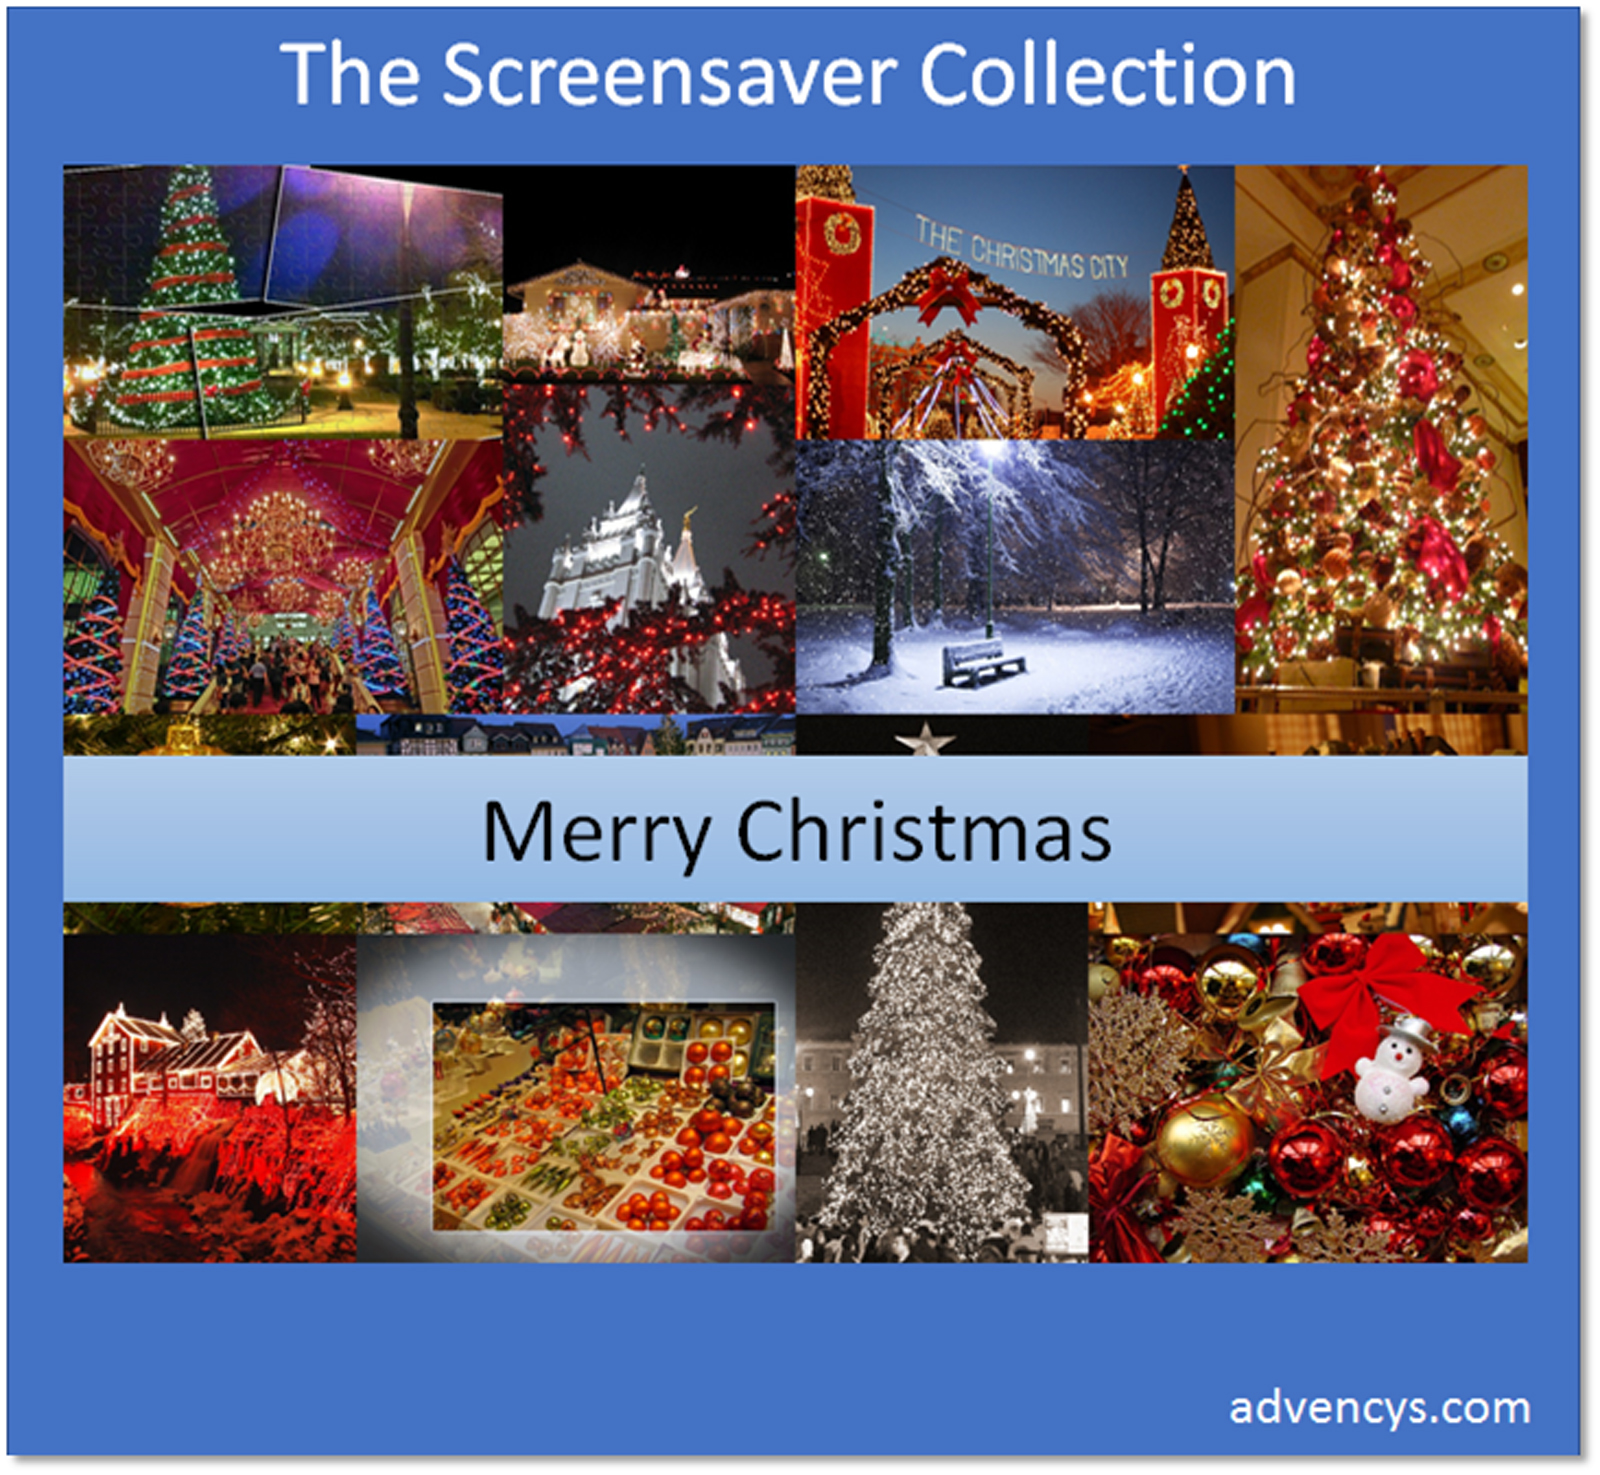 Merry Christmas Screensaver [Download]